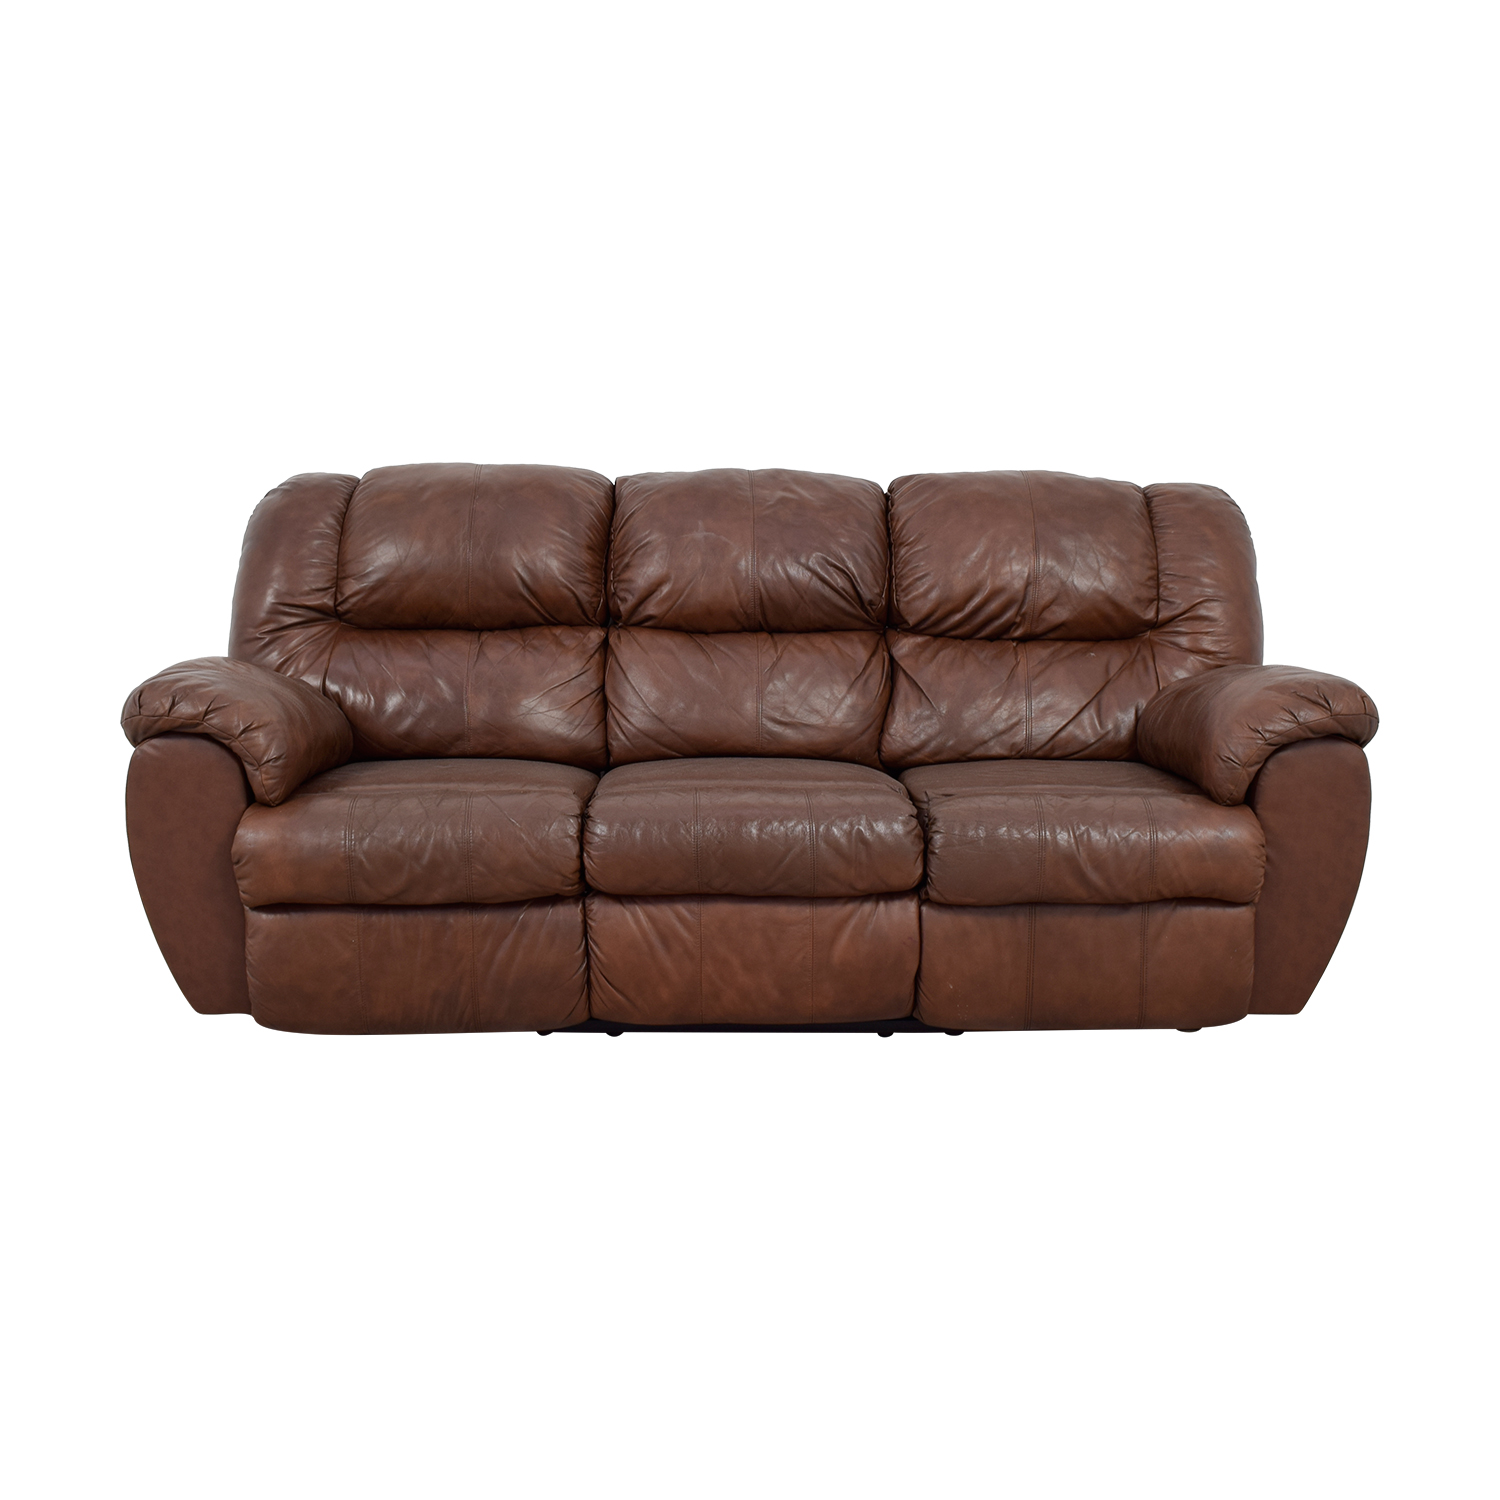 Ashley Furniture Ashley Furniture Dual Reclining Brown Leather Couch